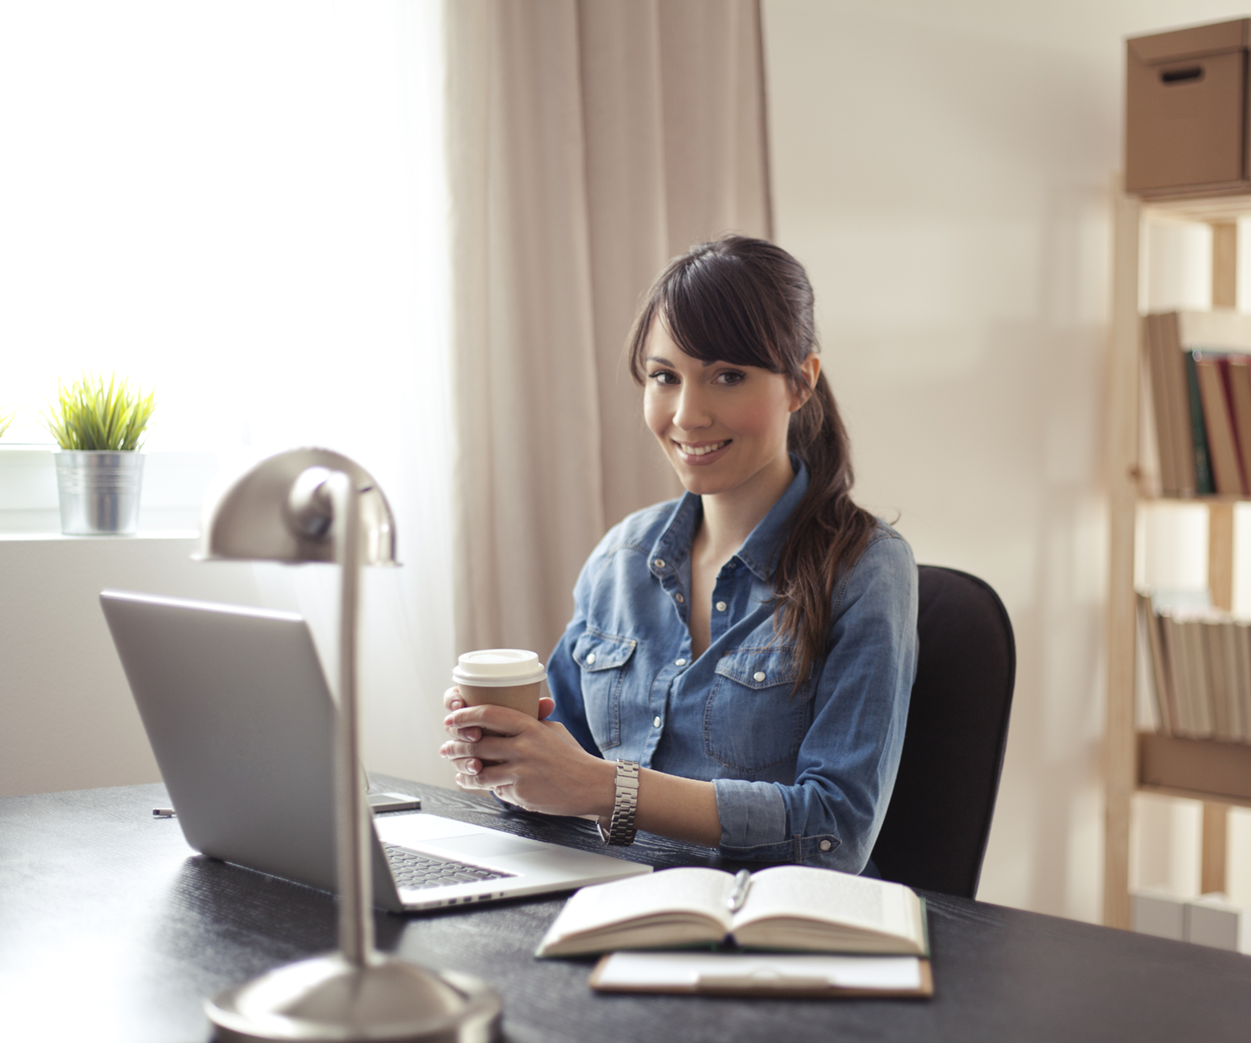 Woman holding coffee cup while working at computer